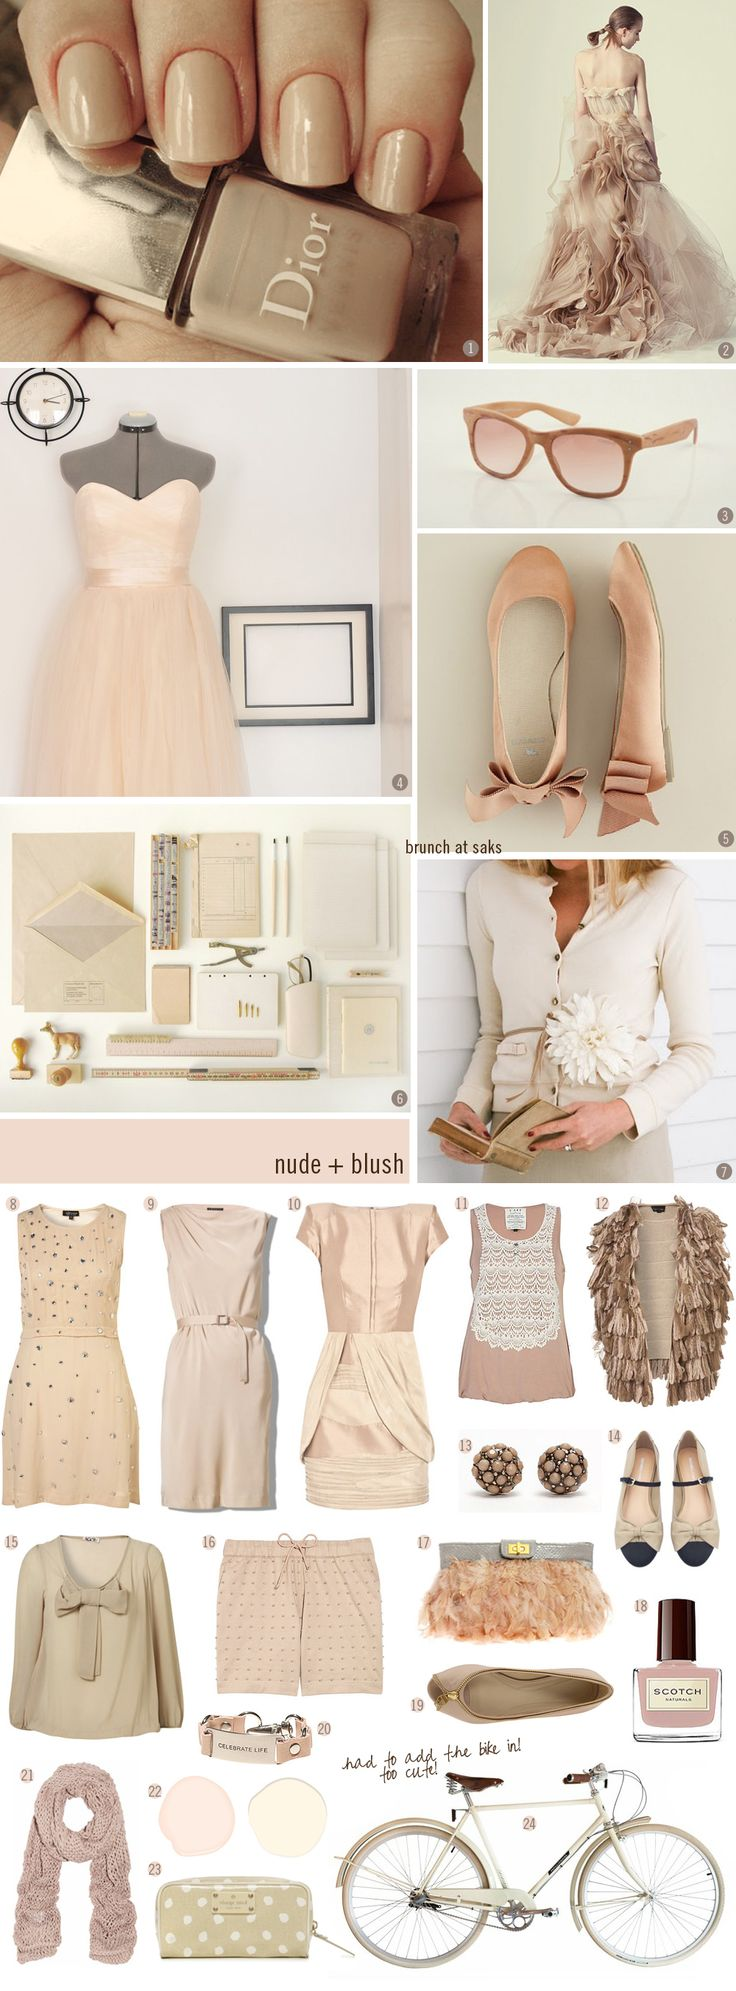 obsesseddd with nude: Blush Nail, Color Palettes, Nail Polish, Style, Favorite Color, Wedding, Nudes